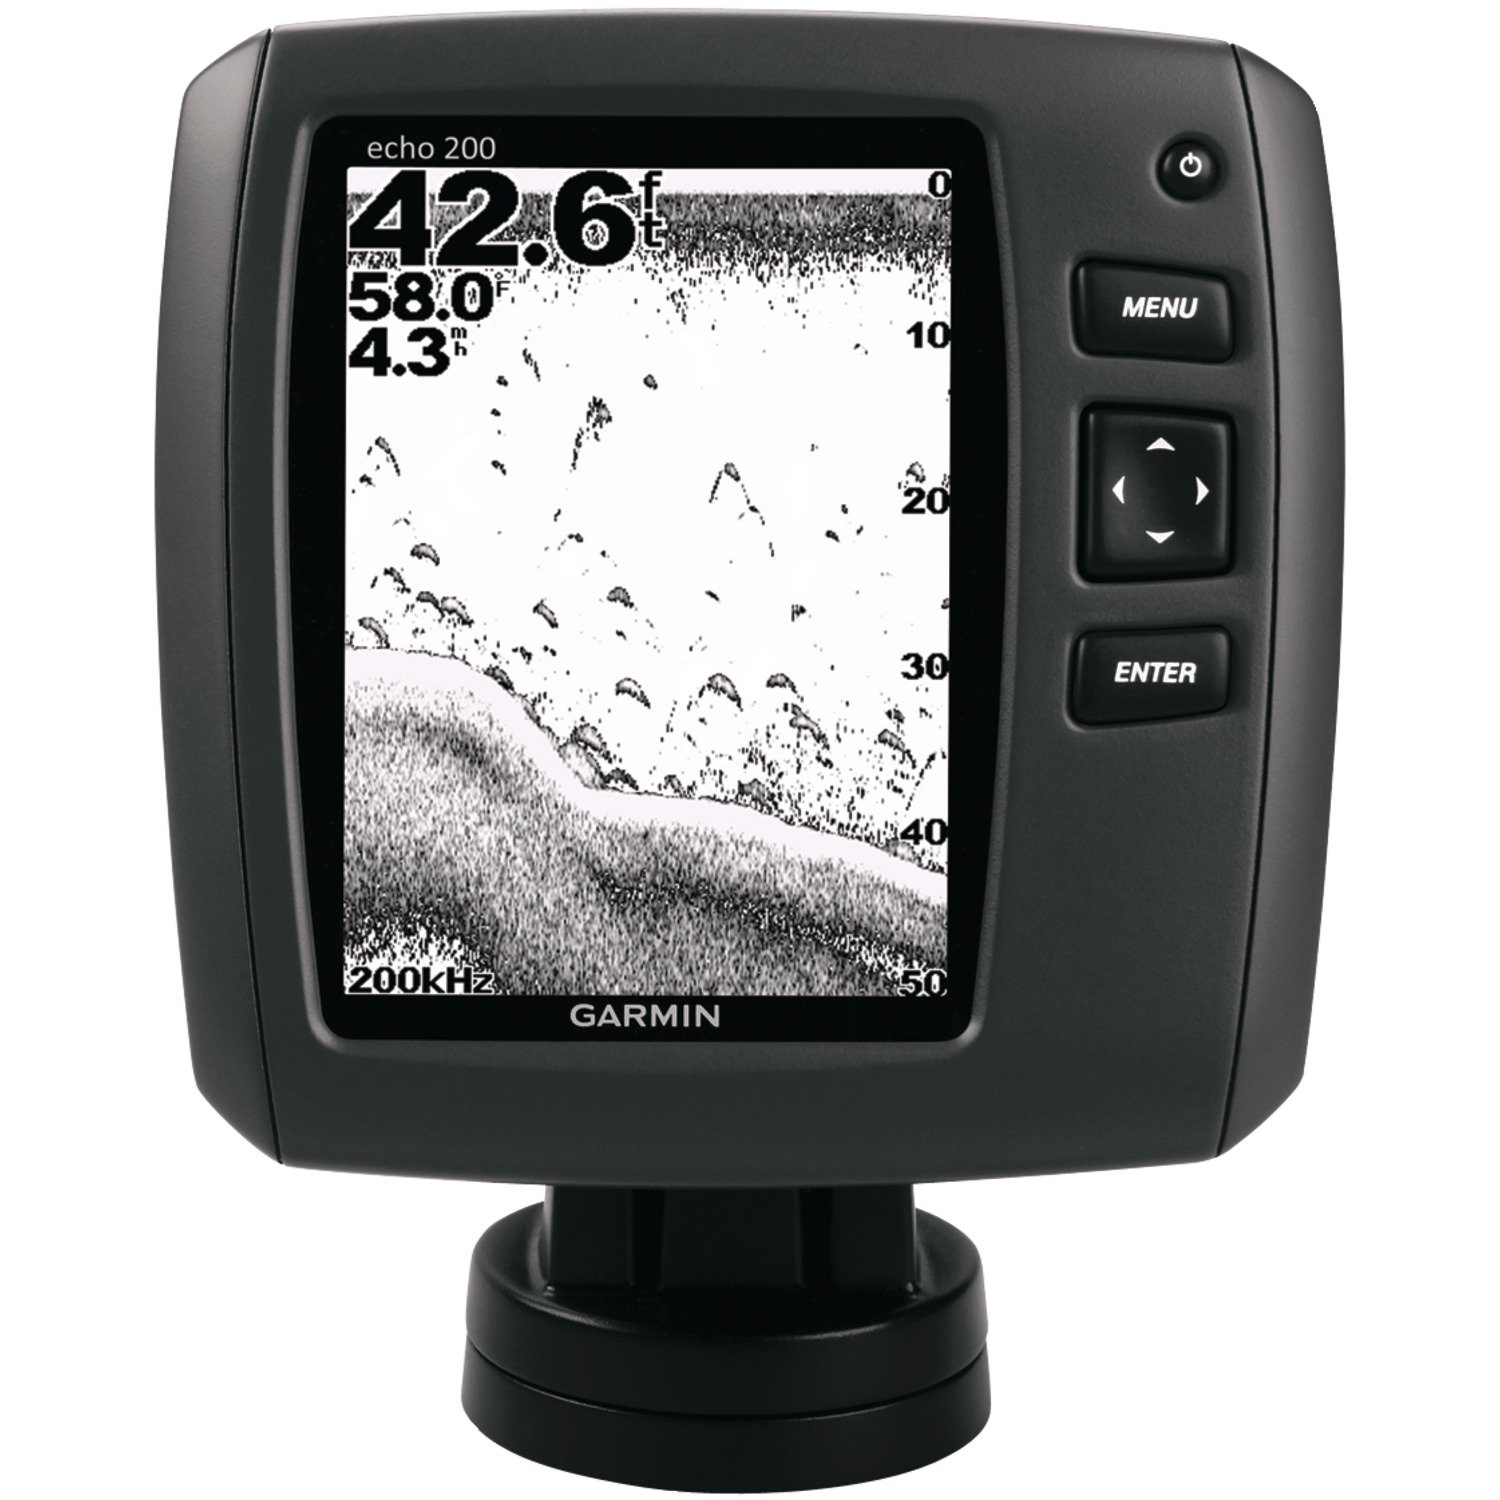 71Vp37CvunL._SL1500_ amazon com garmin echo 300c dual beam fishfinder (discontinued by  at gsmportal.co